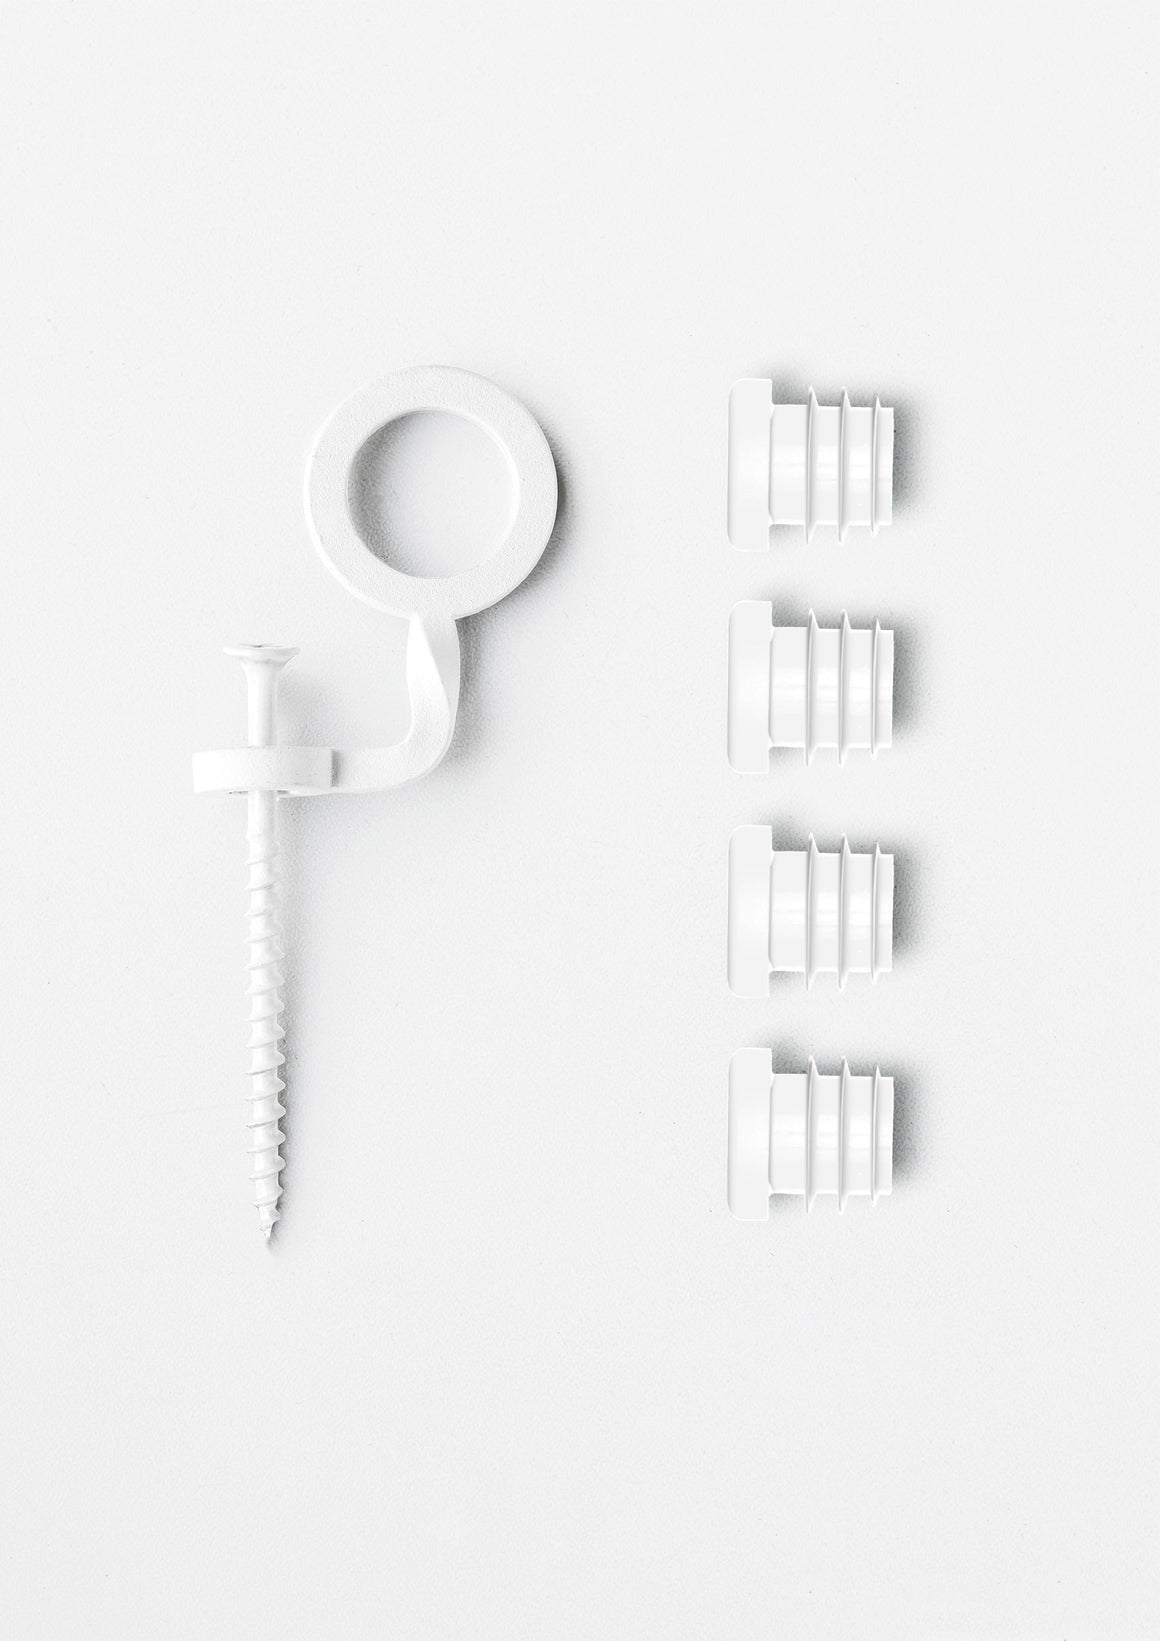 Part - End Caps And Safety Clip Set - White